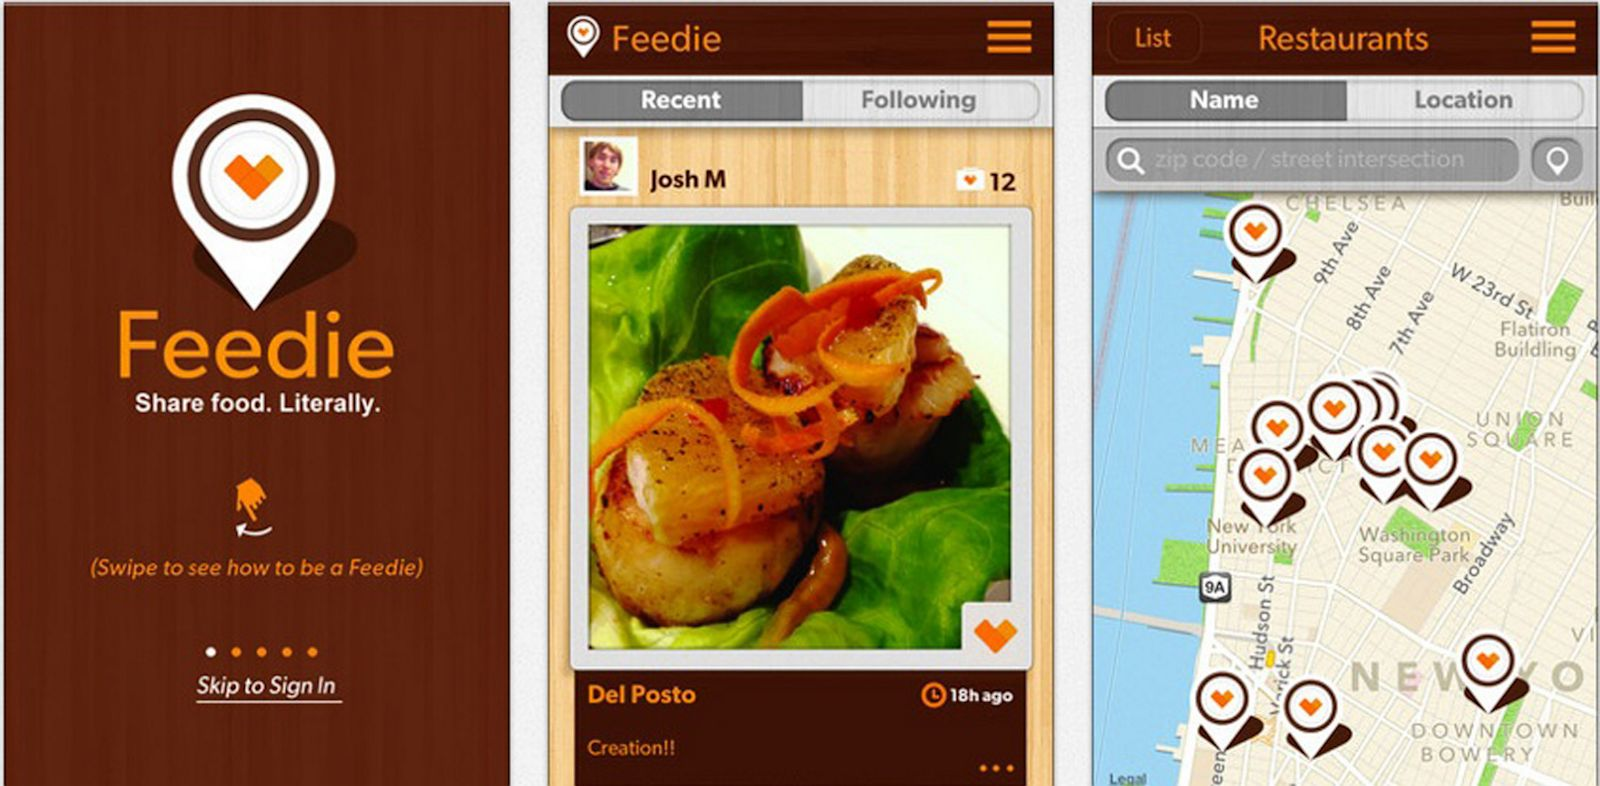 PHOTO: Feedie, and app created by The Lunchbox Fund and Mario Batali